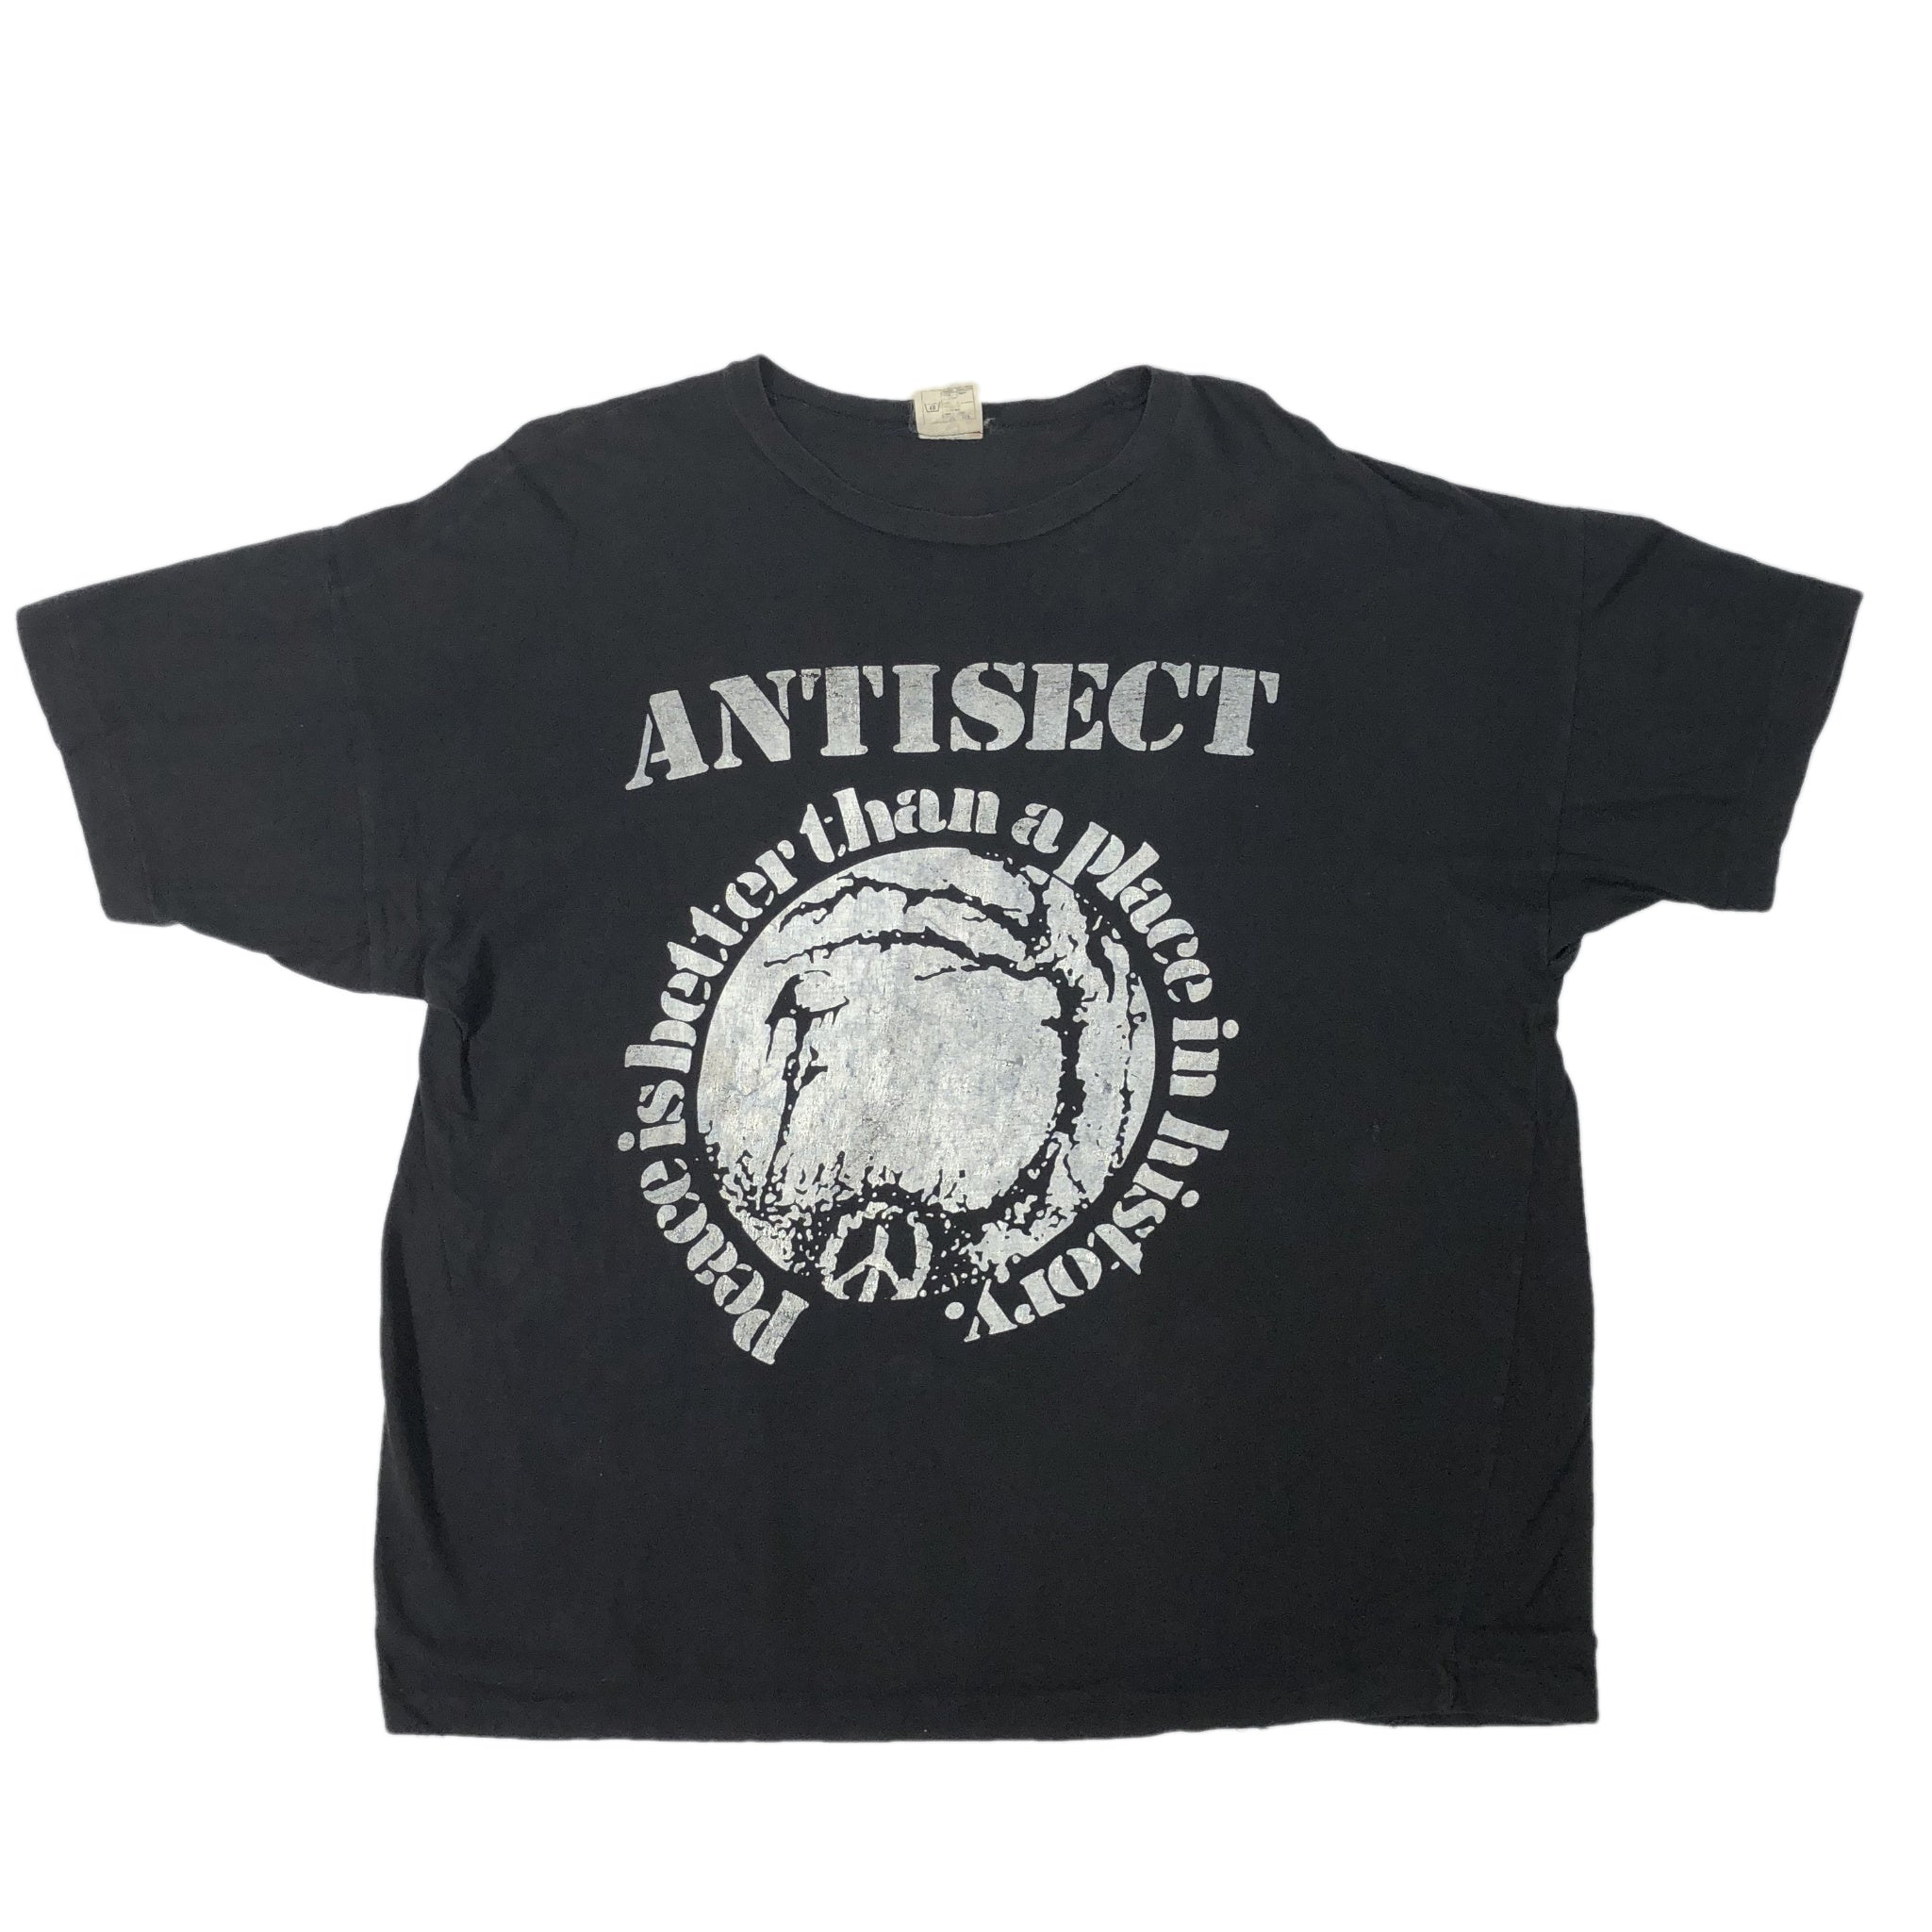 "Vintage Antisect ""Peace is Better Than A Place In History"" T-Shirt"